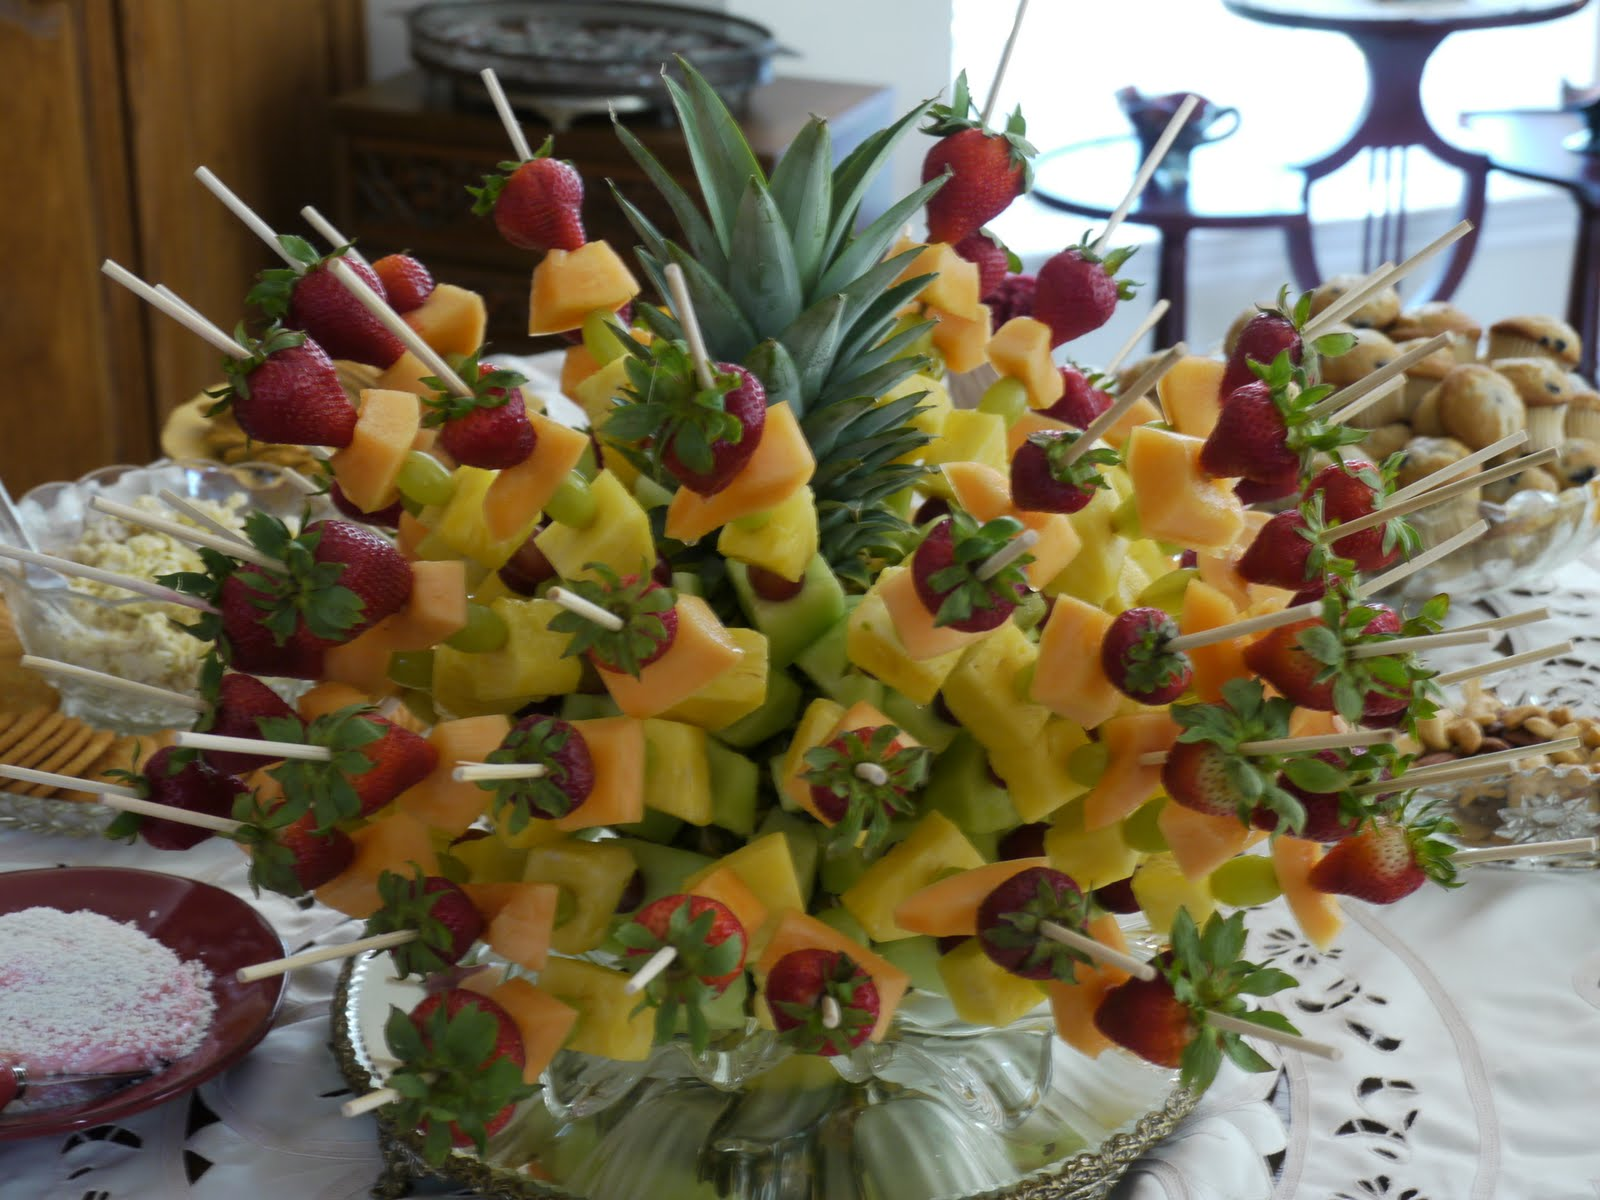 Pineapple Decorations For Kitchen Island Lighting Denise 39s Fruit Kabob Centerpiece